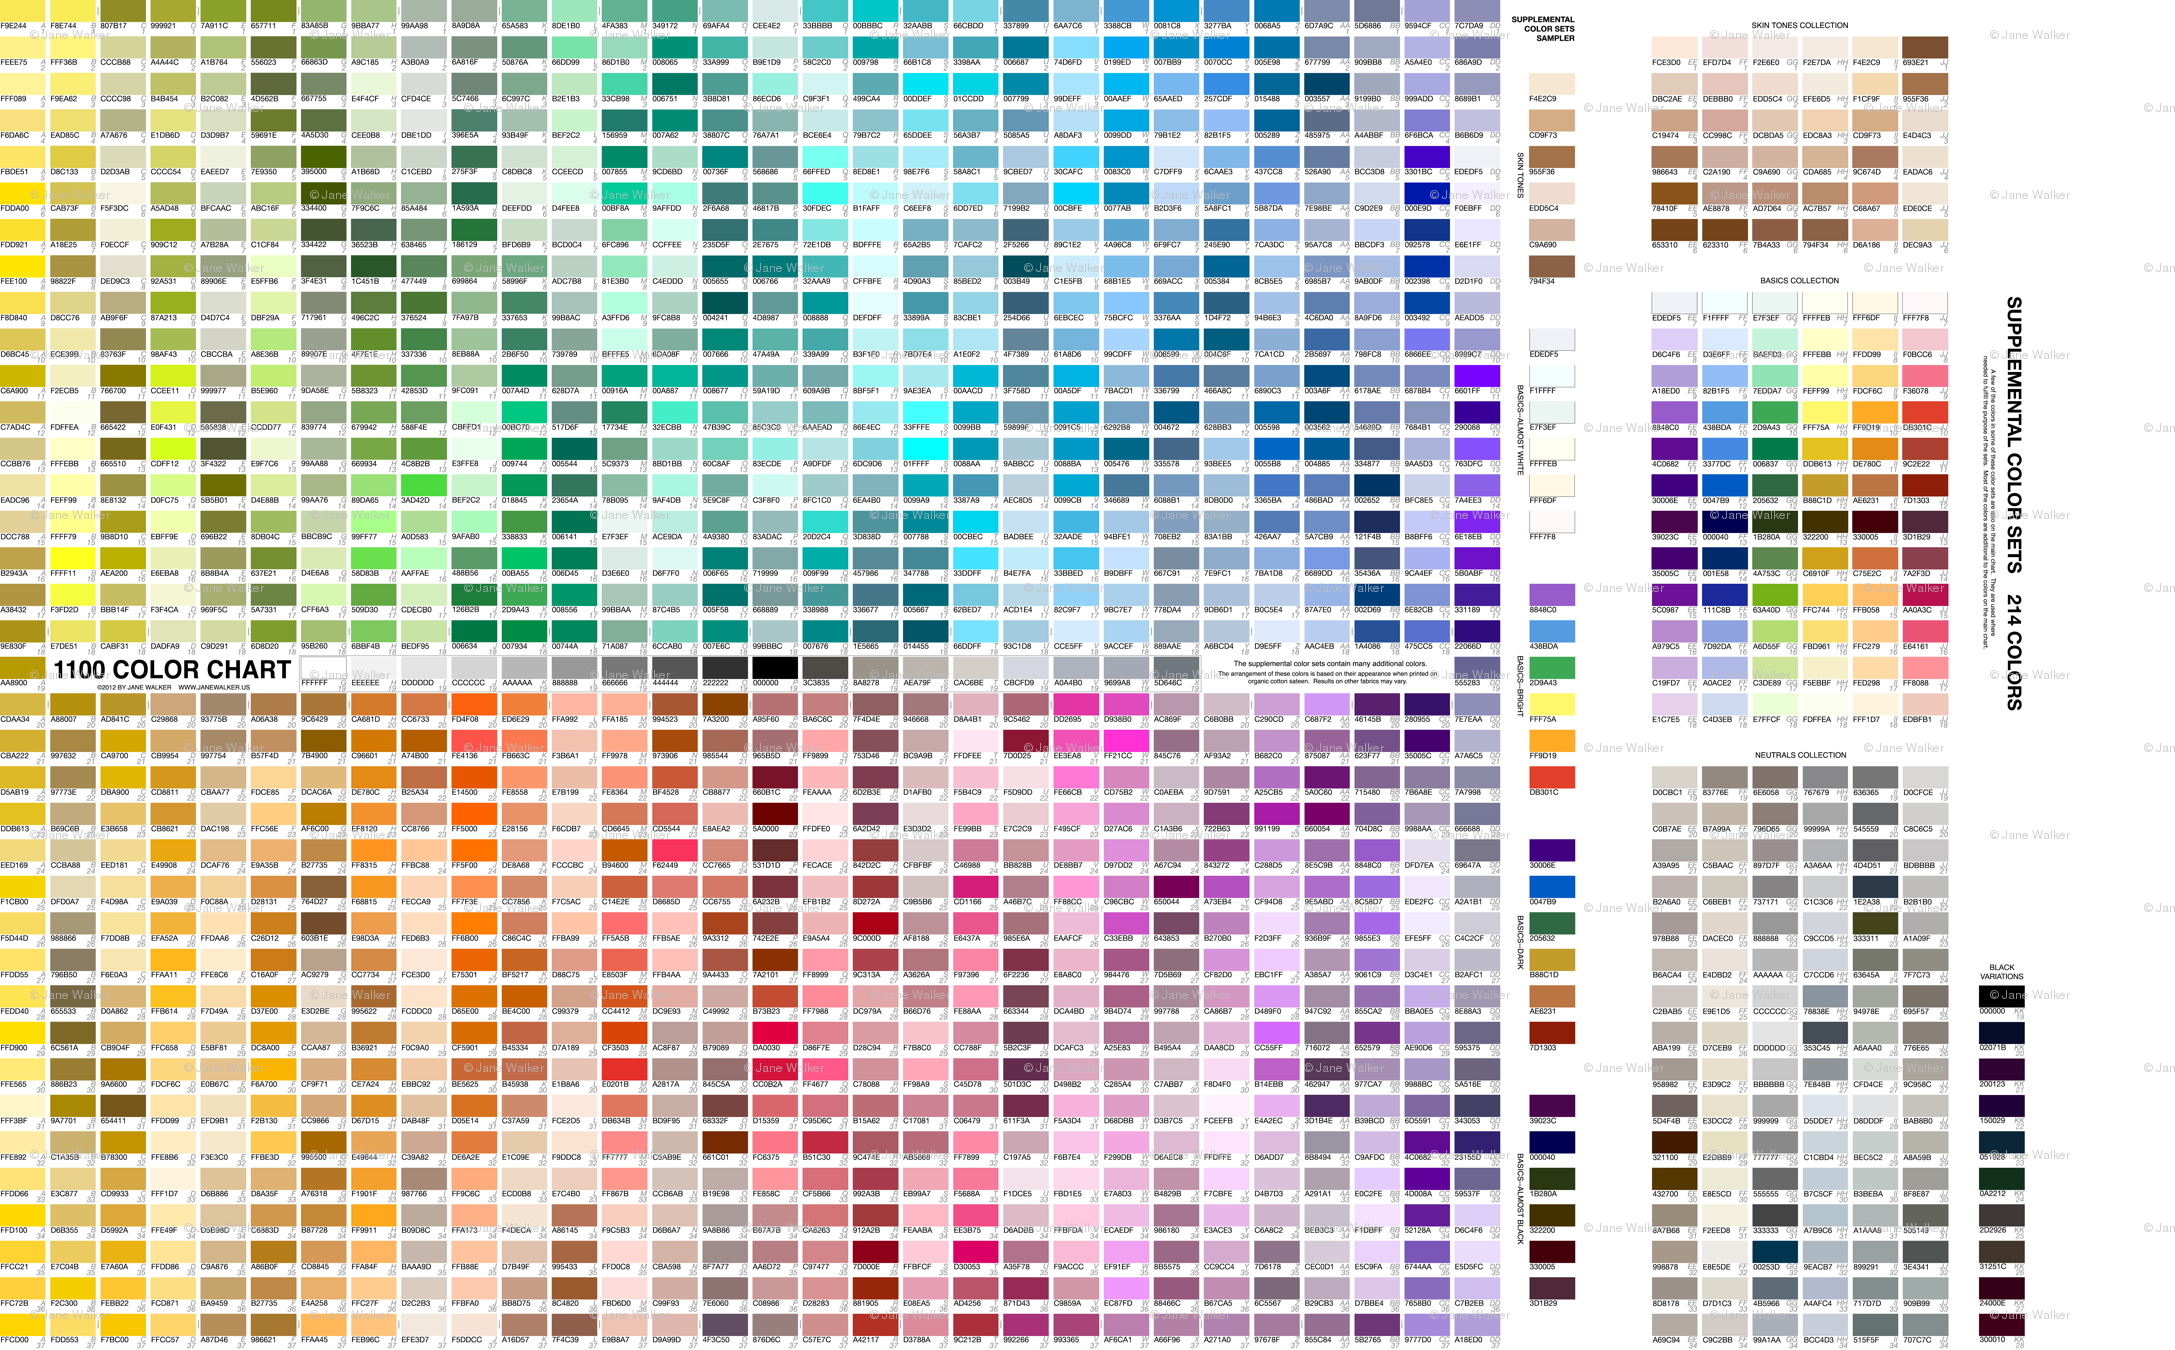 Practical 1100 color chart with supplemental color sets 2012 by practical 1100 color chart with supplemental color sets 2012 by jane walker wallpaper artbyjanewalker spoonflower geenschuldenfo Image collections